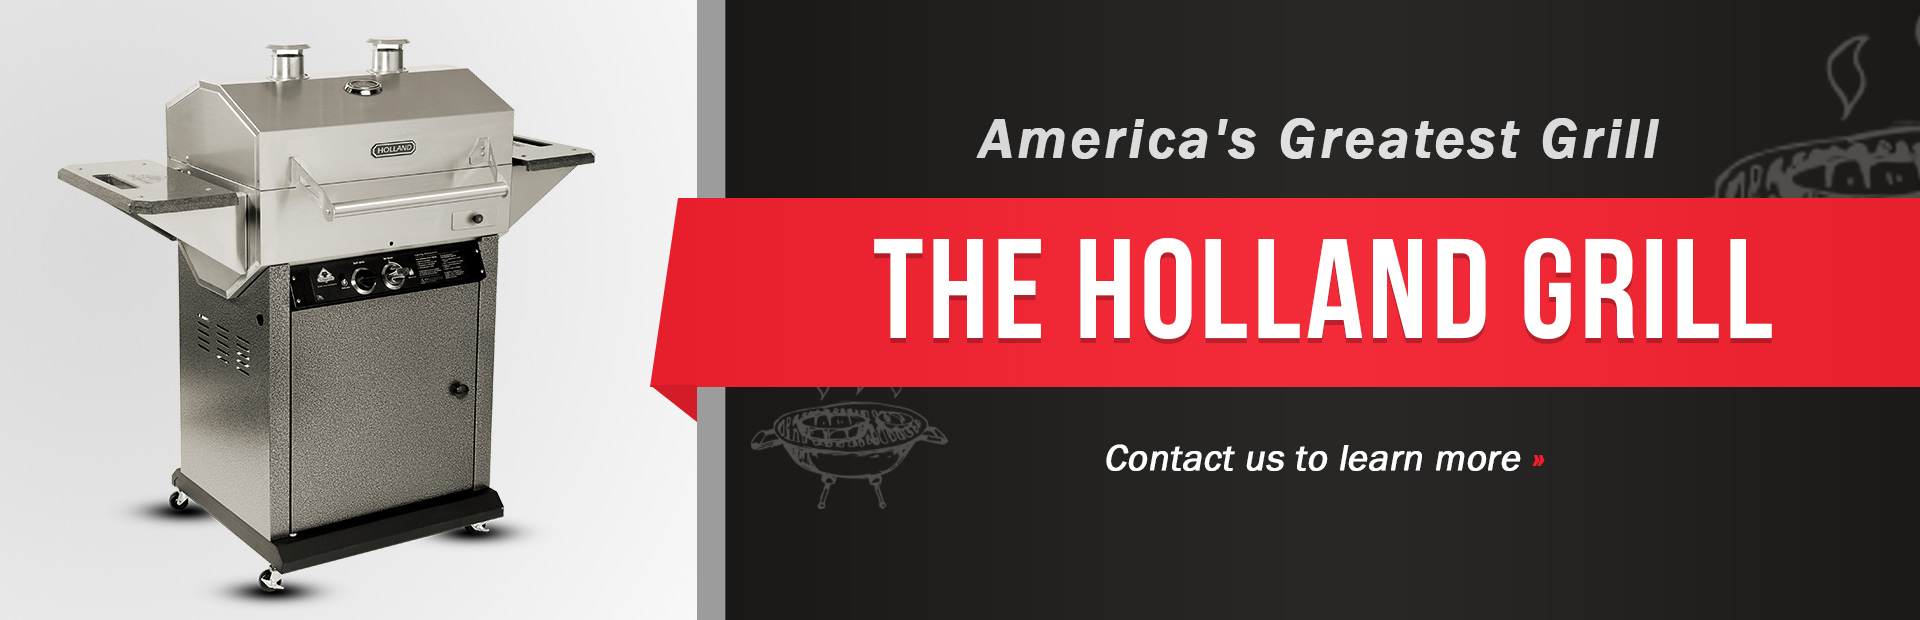 We carry Holland grills! Contact us to learn more.